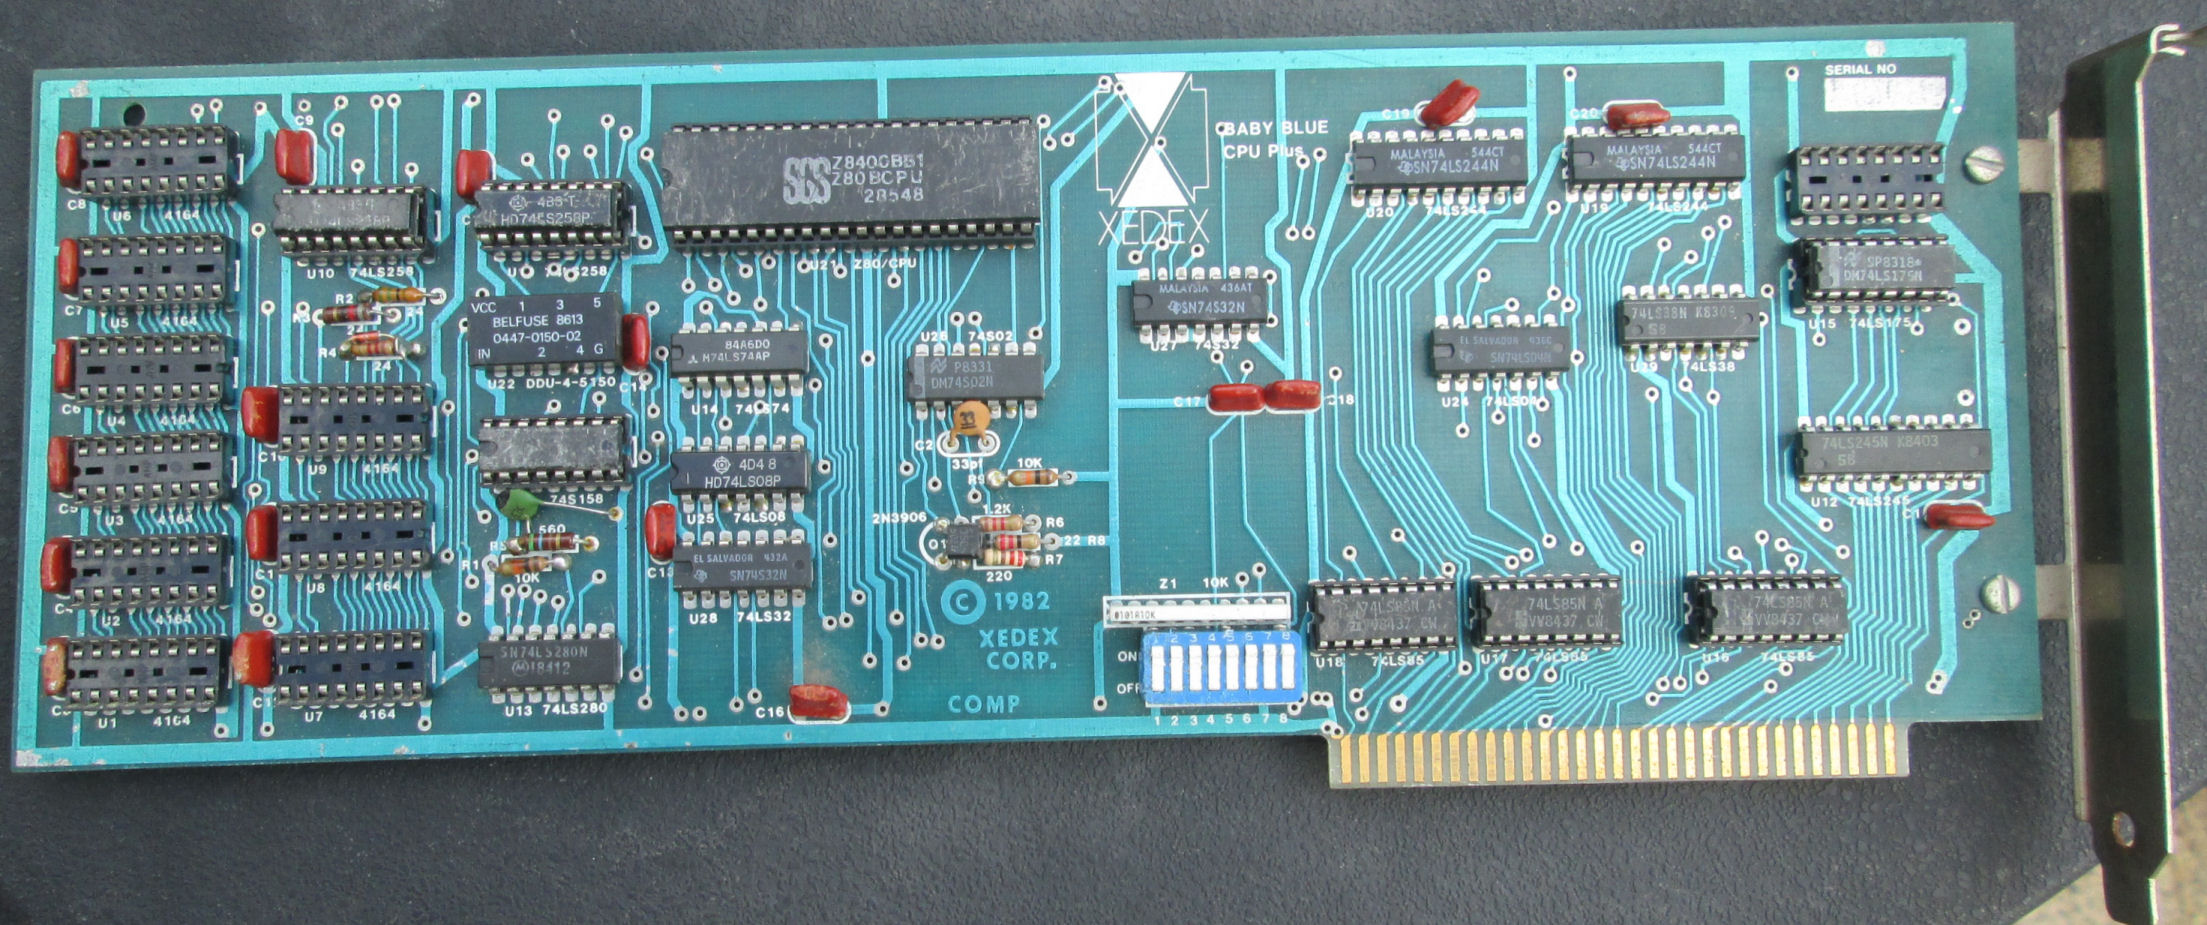 Herbs Odds And Ends Blue Circuit Board Label Cards As Pictured Or One With A Pale But Identical Layout Chipset Dram Chips Removed On All Of Them